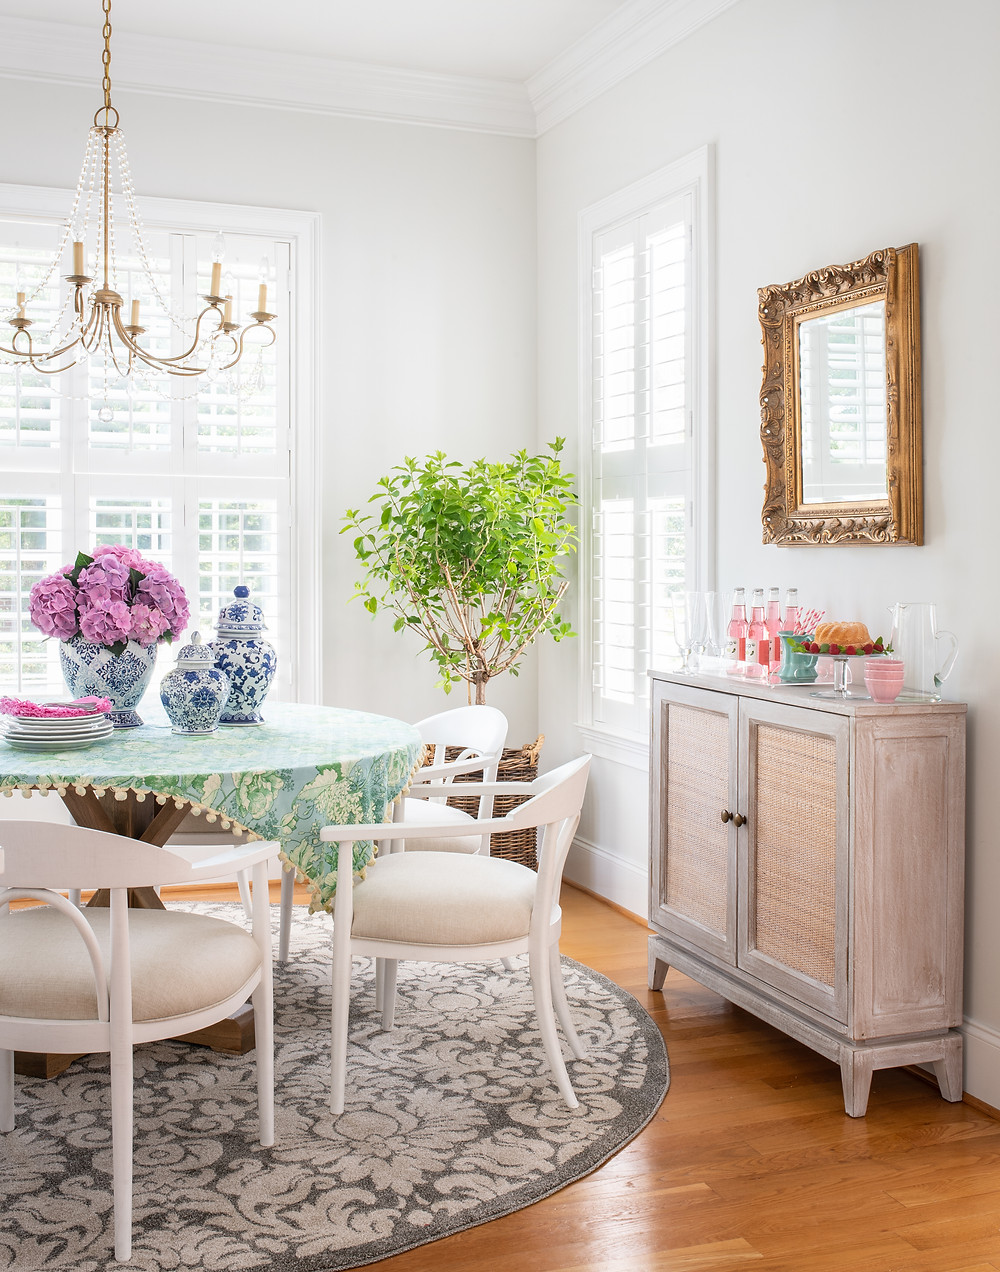 Elegant Retrohemian Chateau: Home Tour, Breakfast Nook and Kitchen Mary Hannah Interiors